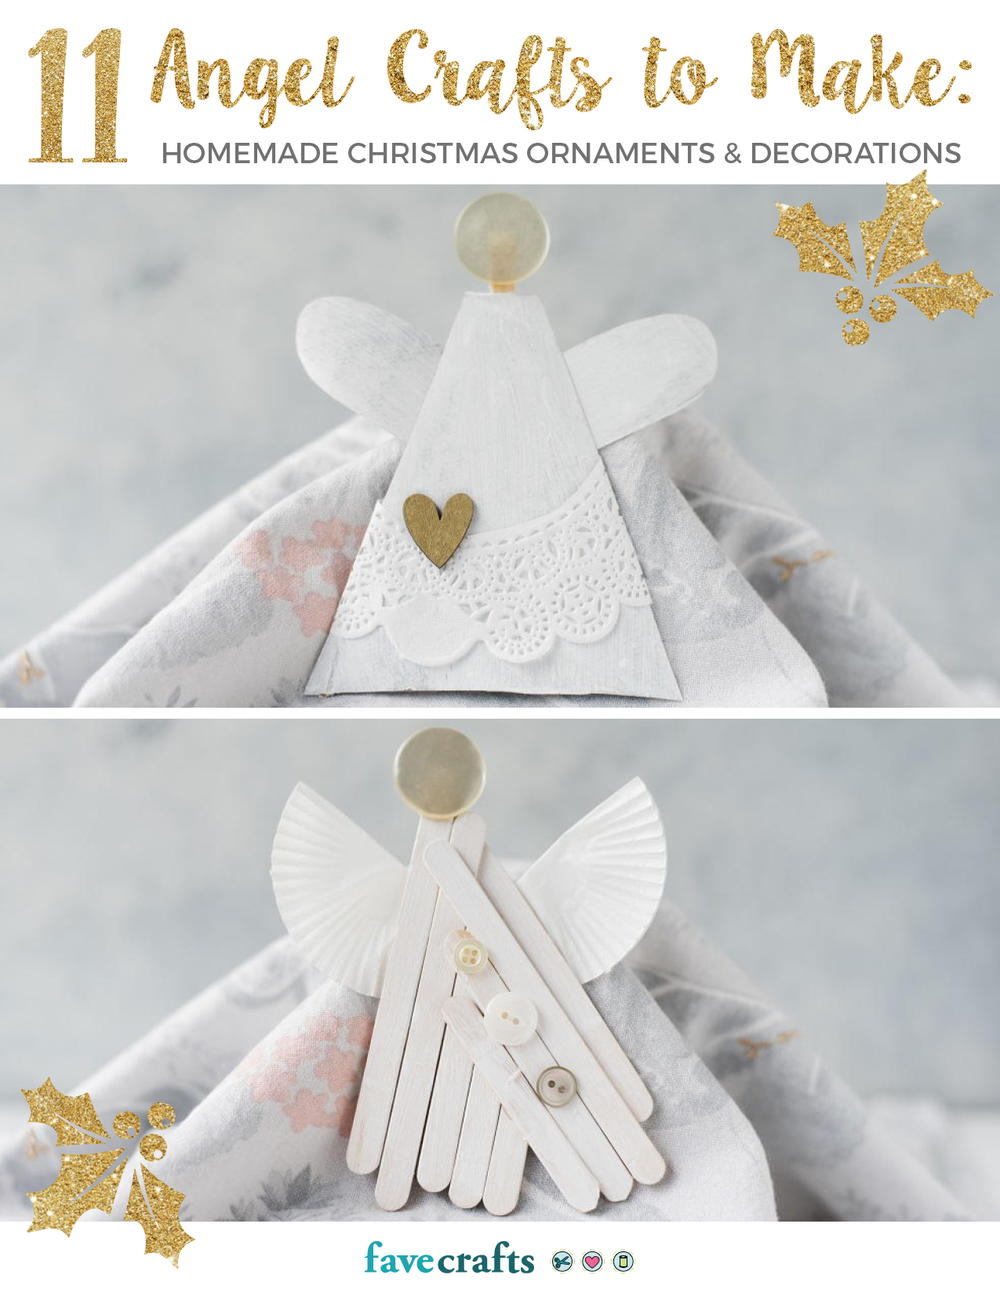 Latest free craft ebooks favecrafts 11 angel crafts to make homemade christmas ornaments decorations fandeluxe Document